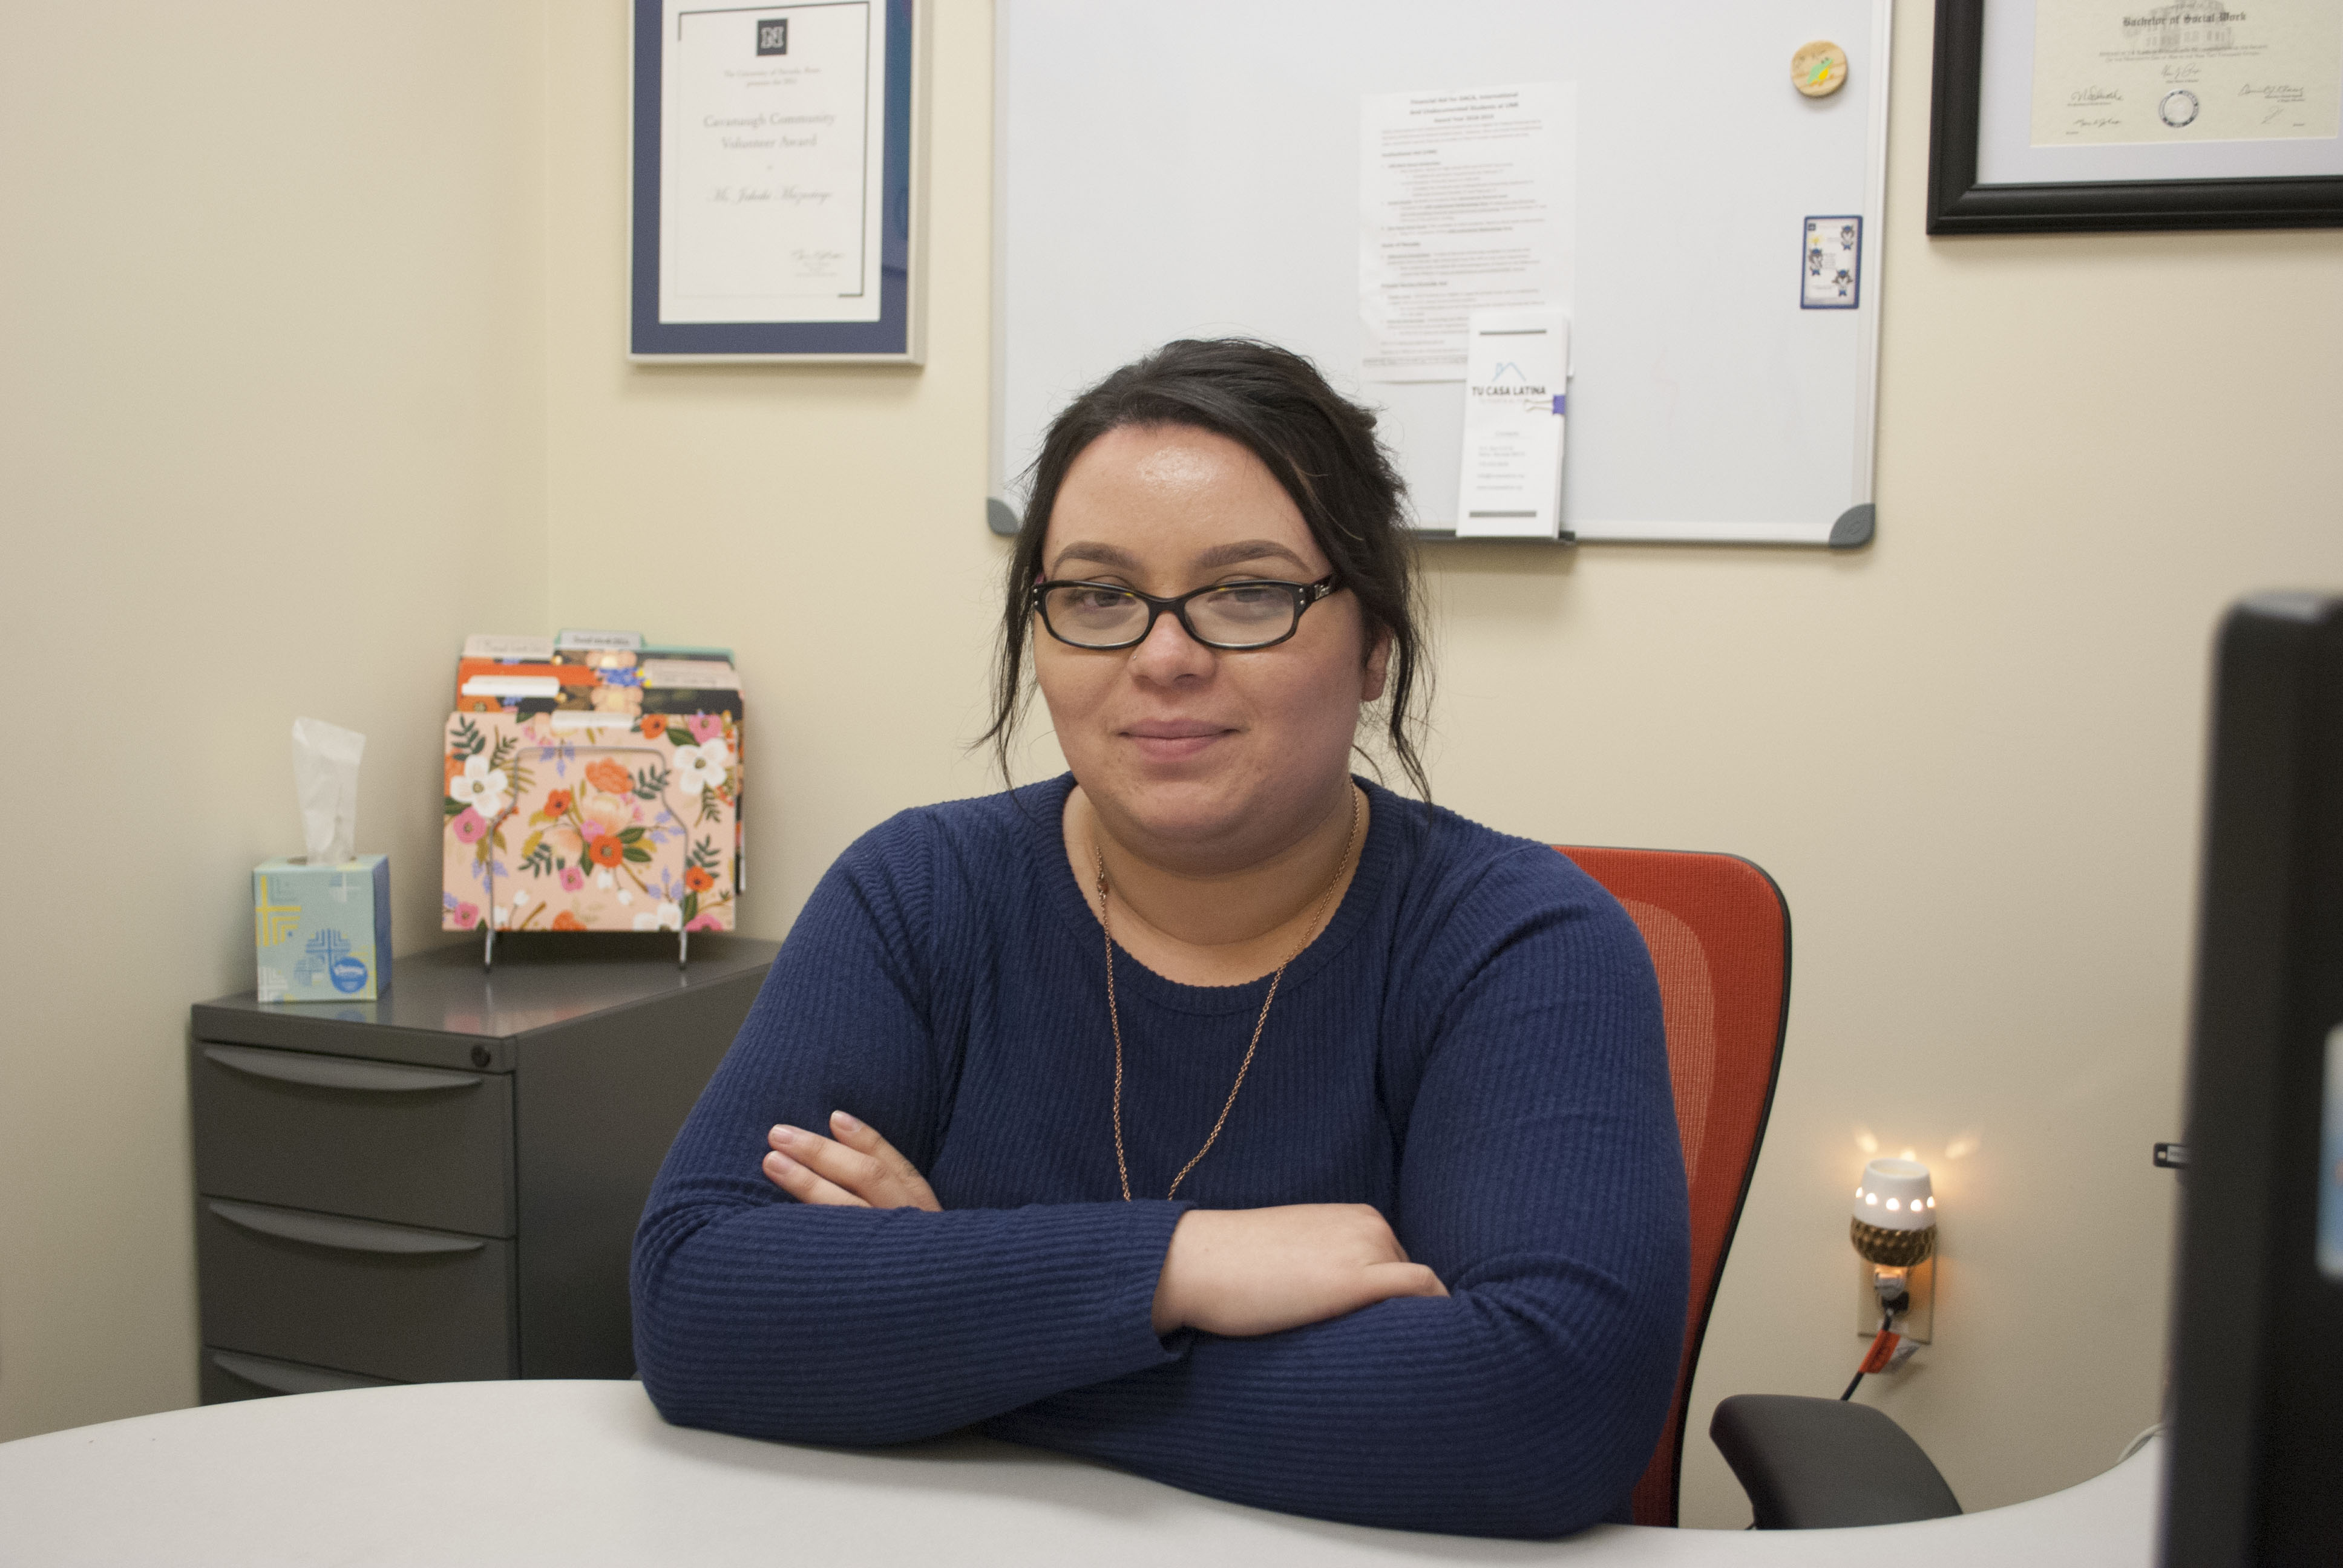 Jahahi Mazariego is the UNR Social Services Coordinator and works with the university's undocumented students. CREDIT: Jolie Ross